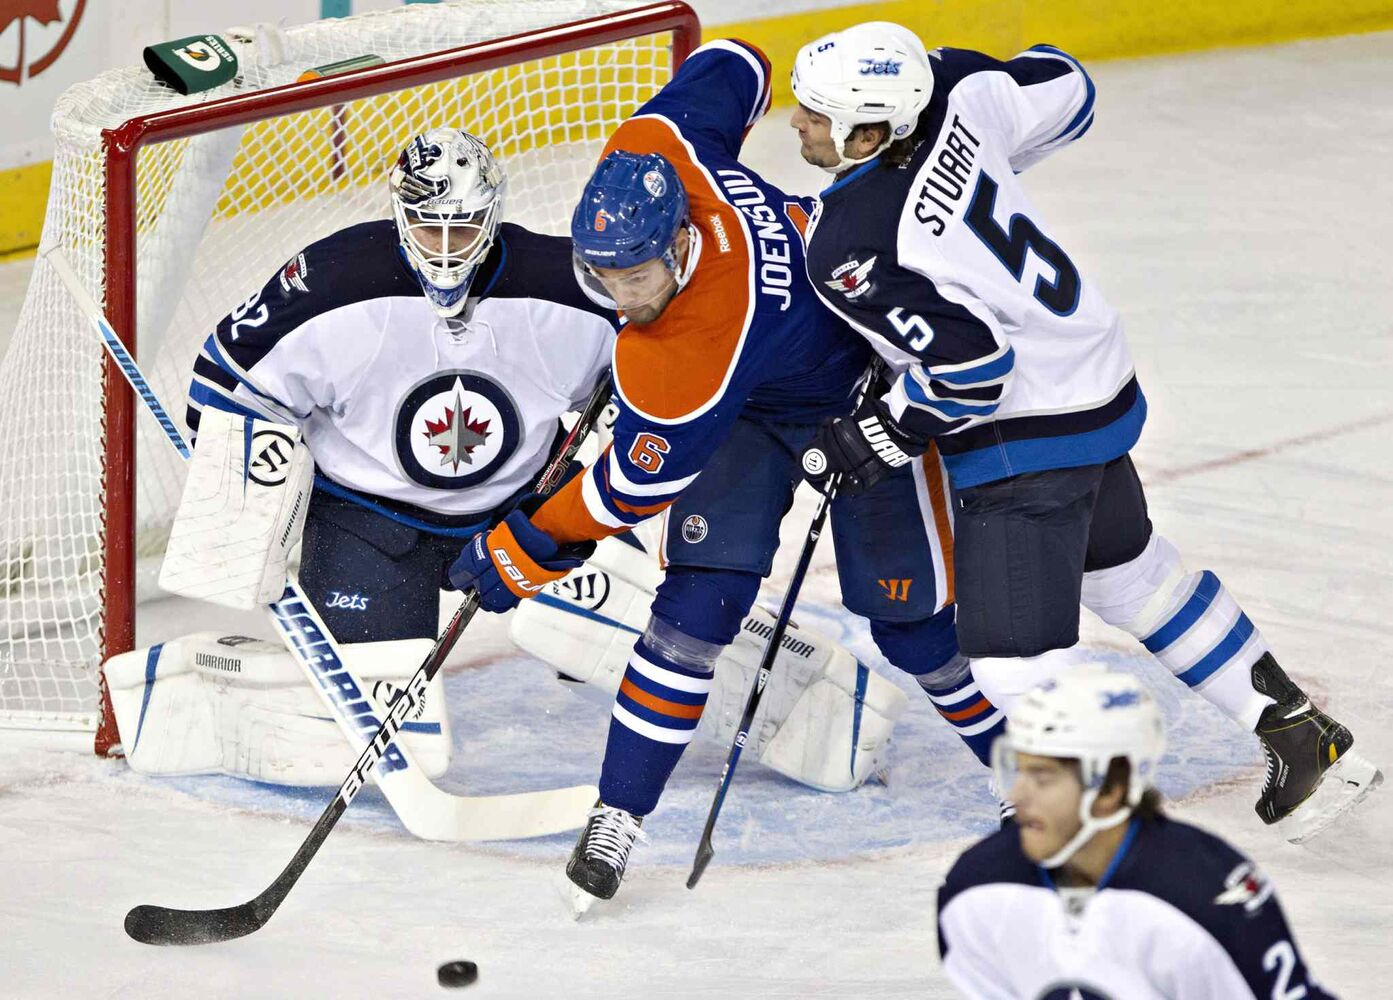 Winnipeg Jets goaltender Edward Pasquale makes a save as Mark Stuart (5) and Edmonton Oilers Jesse Joensuu (6) battle for the rebound during the first period. (Jason Franson / The Canadian Press)